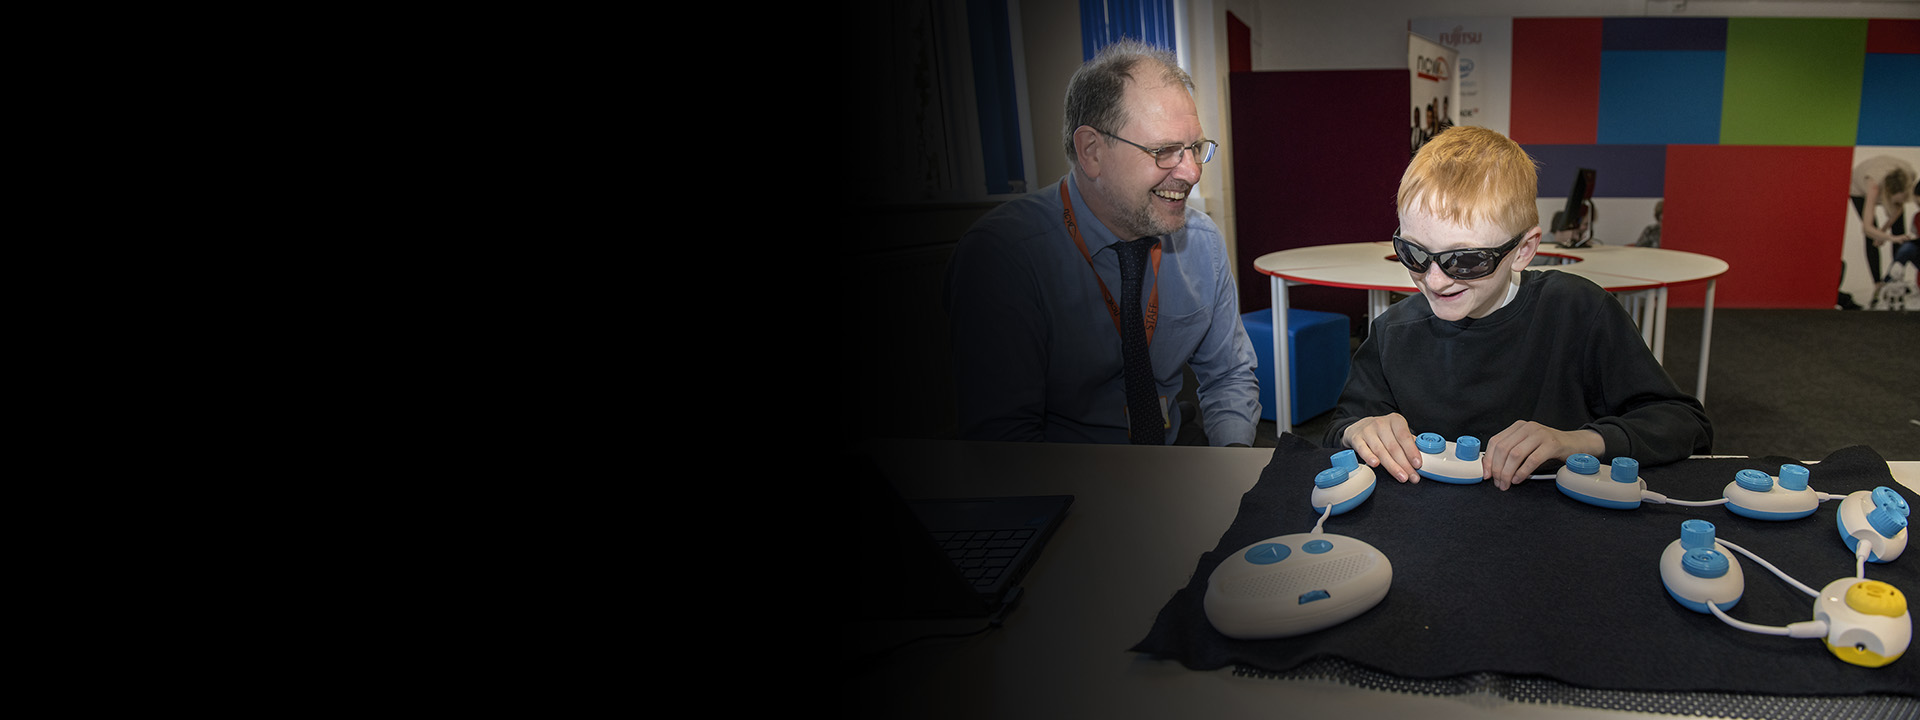 Young blind person learning to code tactilely using Code Jumper pods as teacher looks on. Photo by Jonathan Banks.